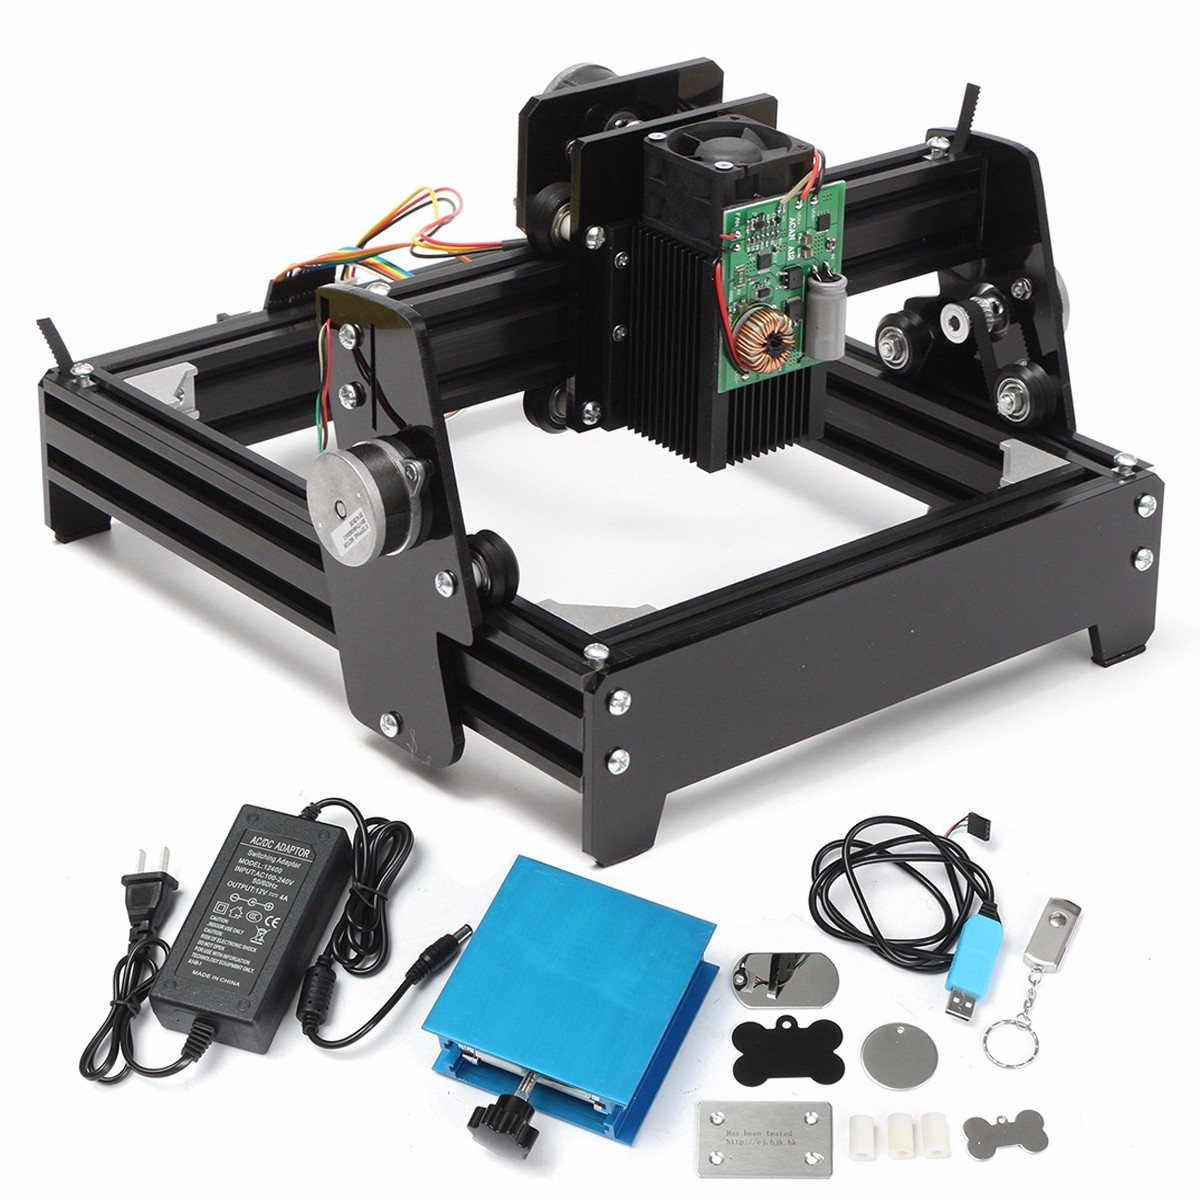 New 10W Laser  USB Desktop 10000mW CNC Laser Engraver DIY Marking Machine For Metal Stone Wood Engraving Area 14 x 20cm cnc router wood milling machine cnc 3040z vfd800w 3axis usb for wood working with ball screw